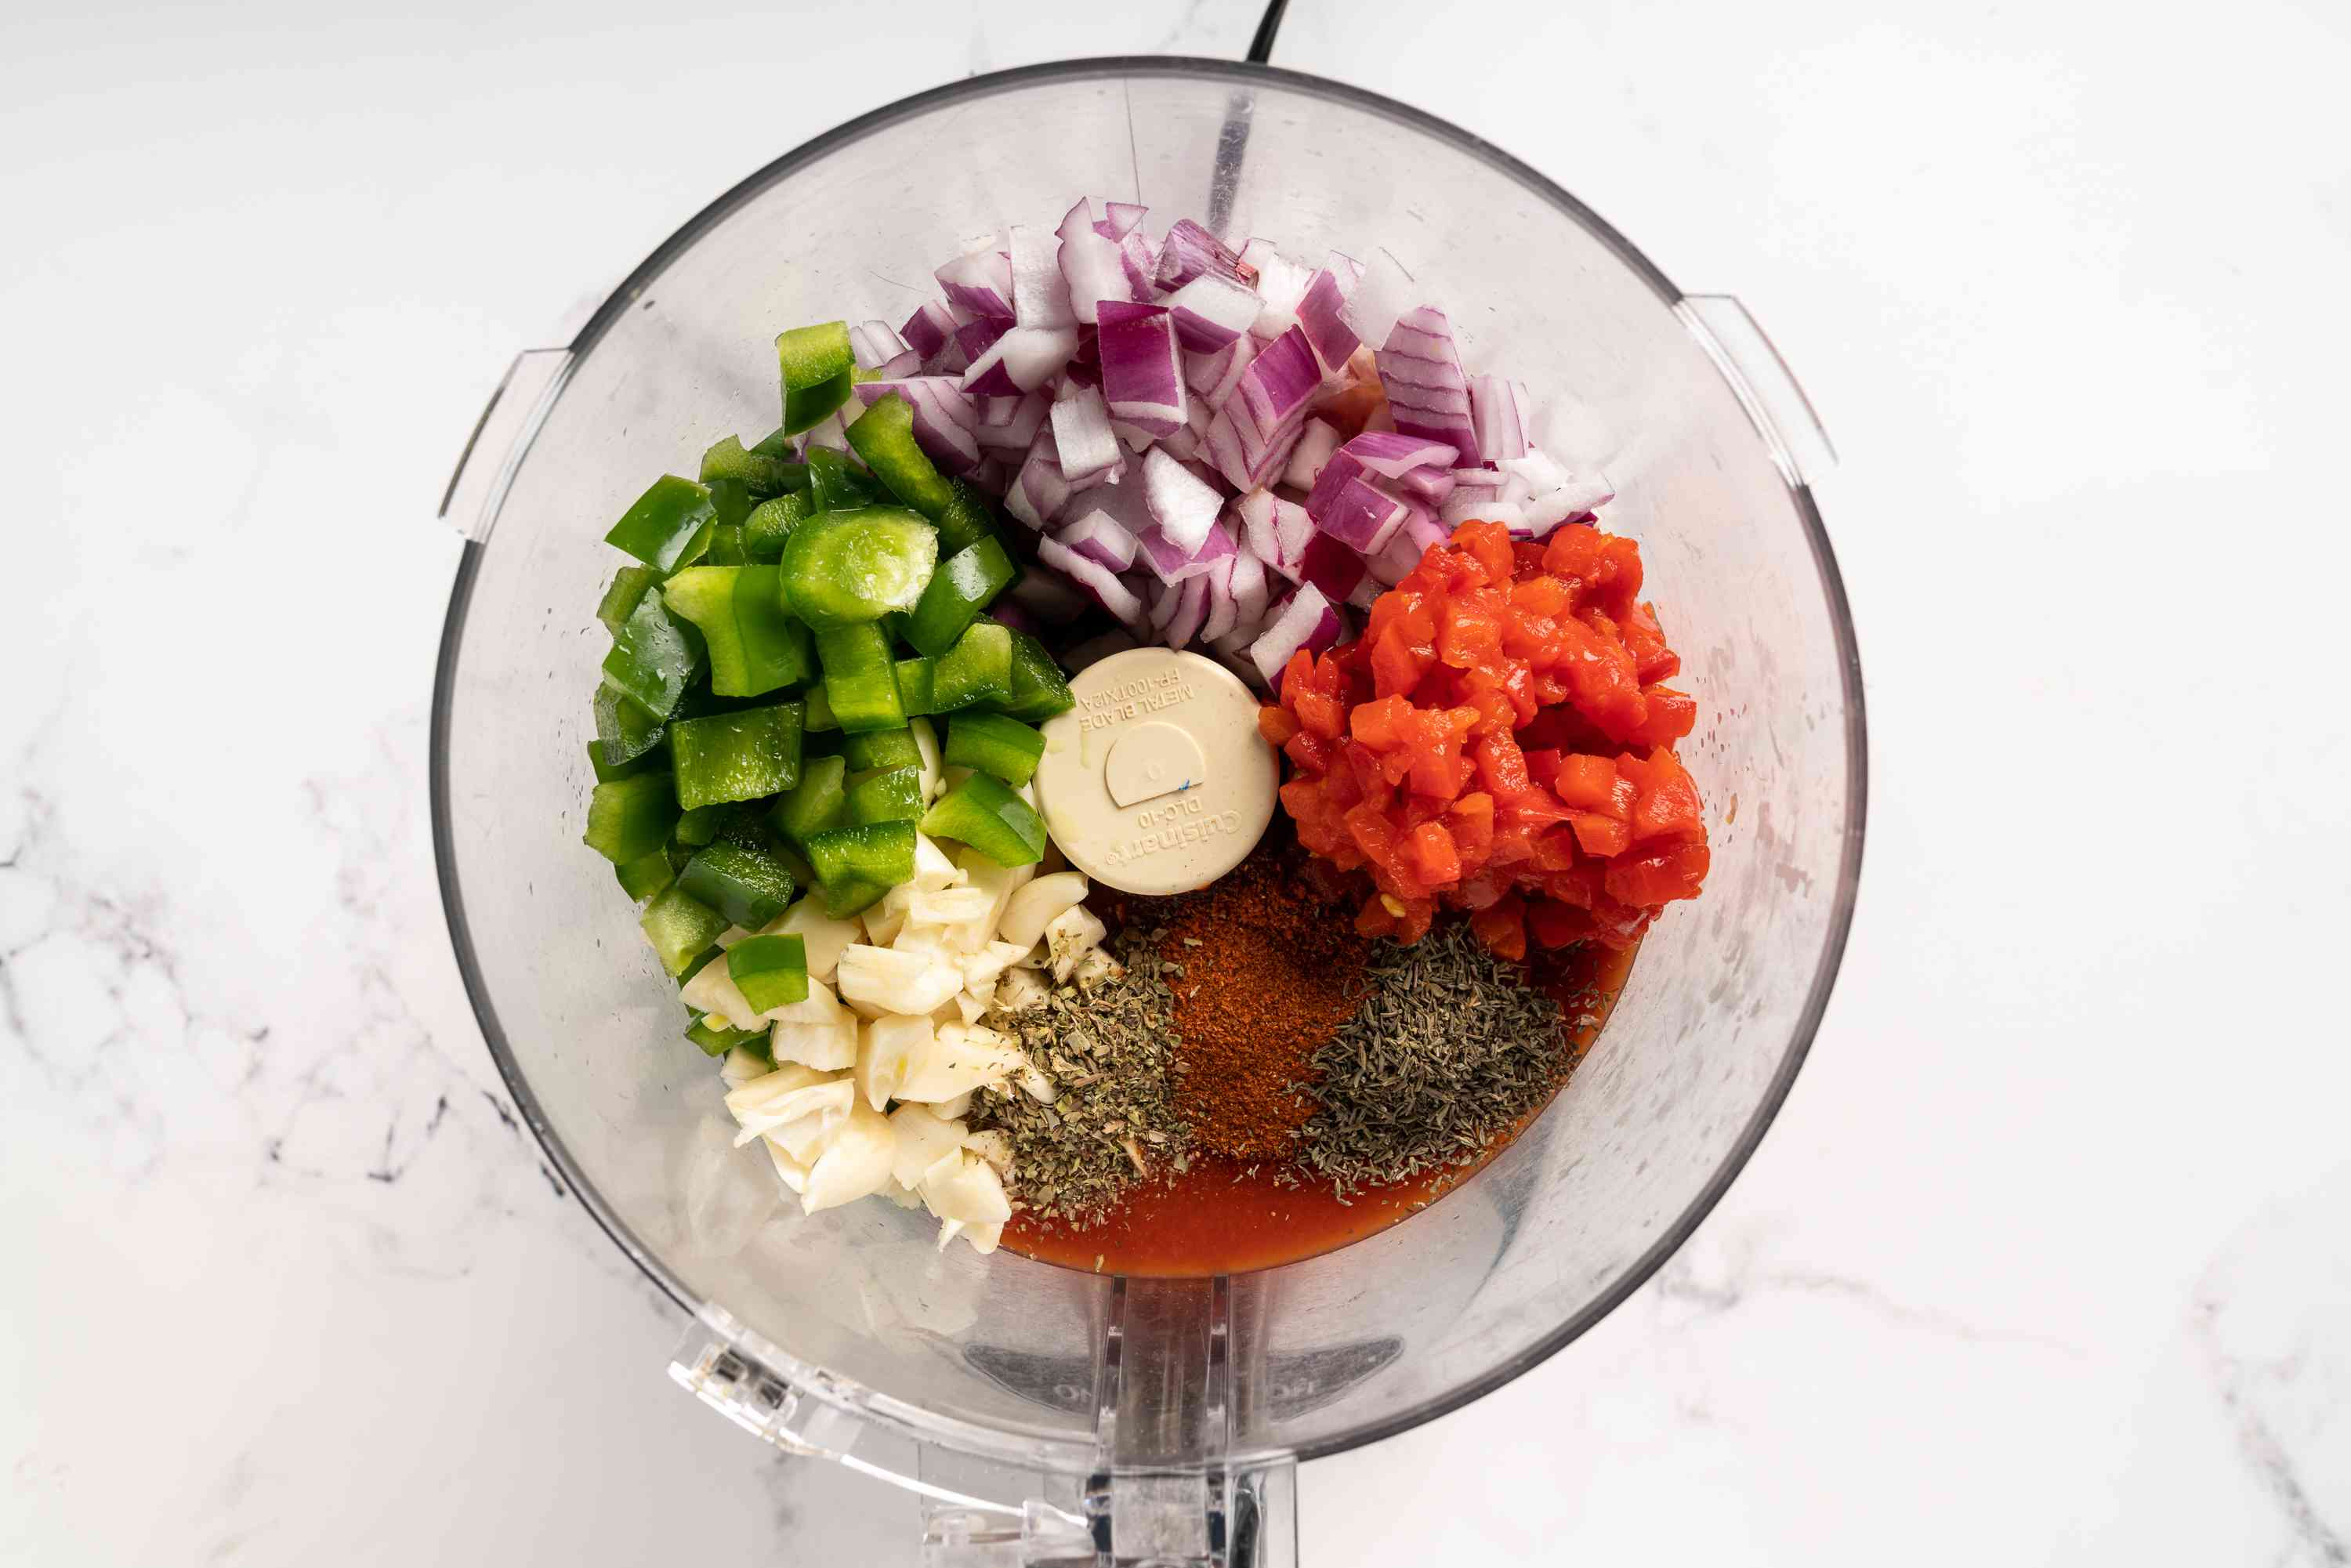 Chop and blend all the ingredients in a food processor